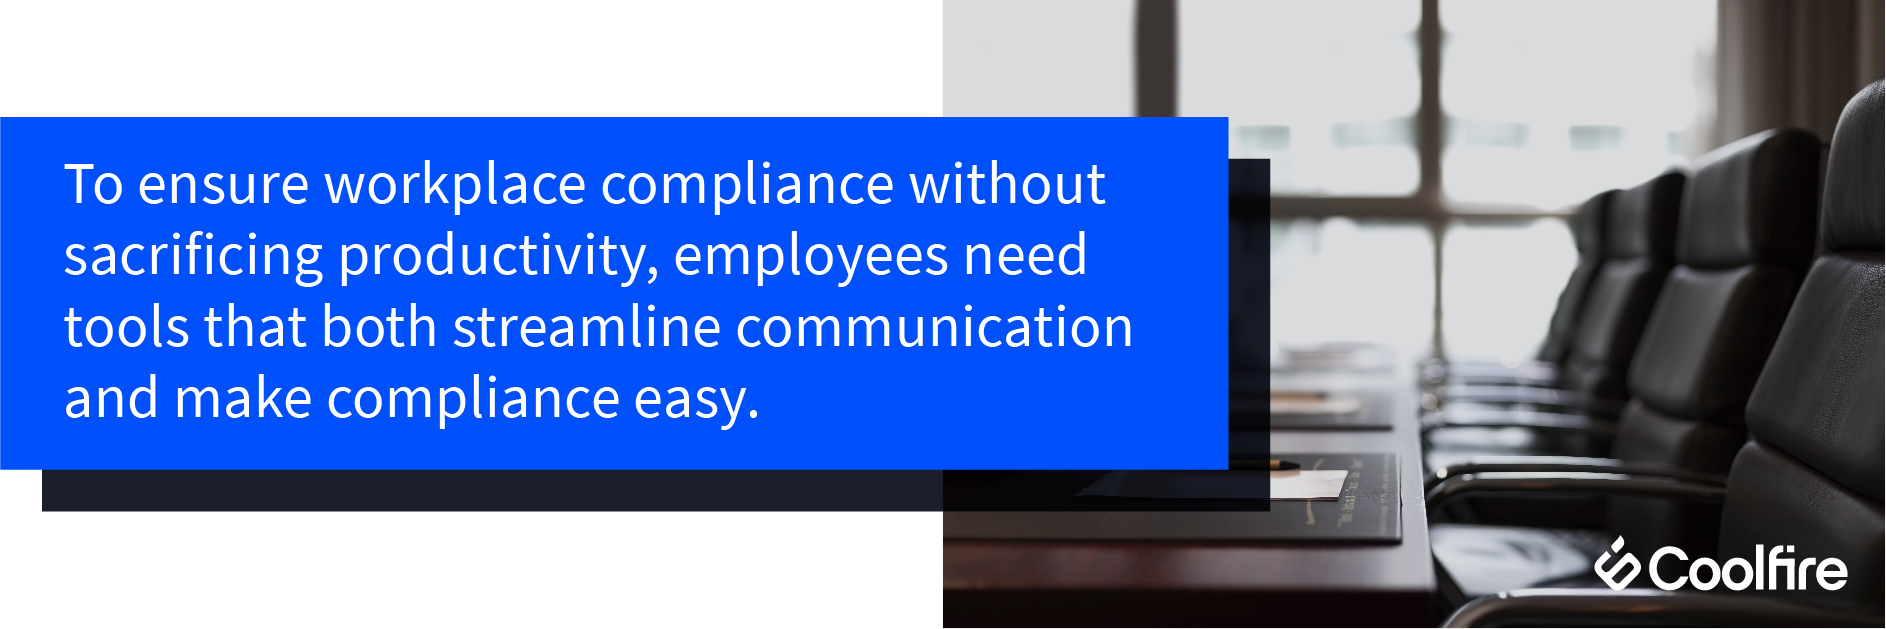 make workplace communication compliant